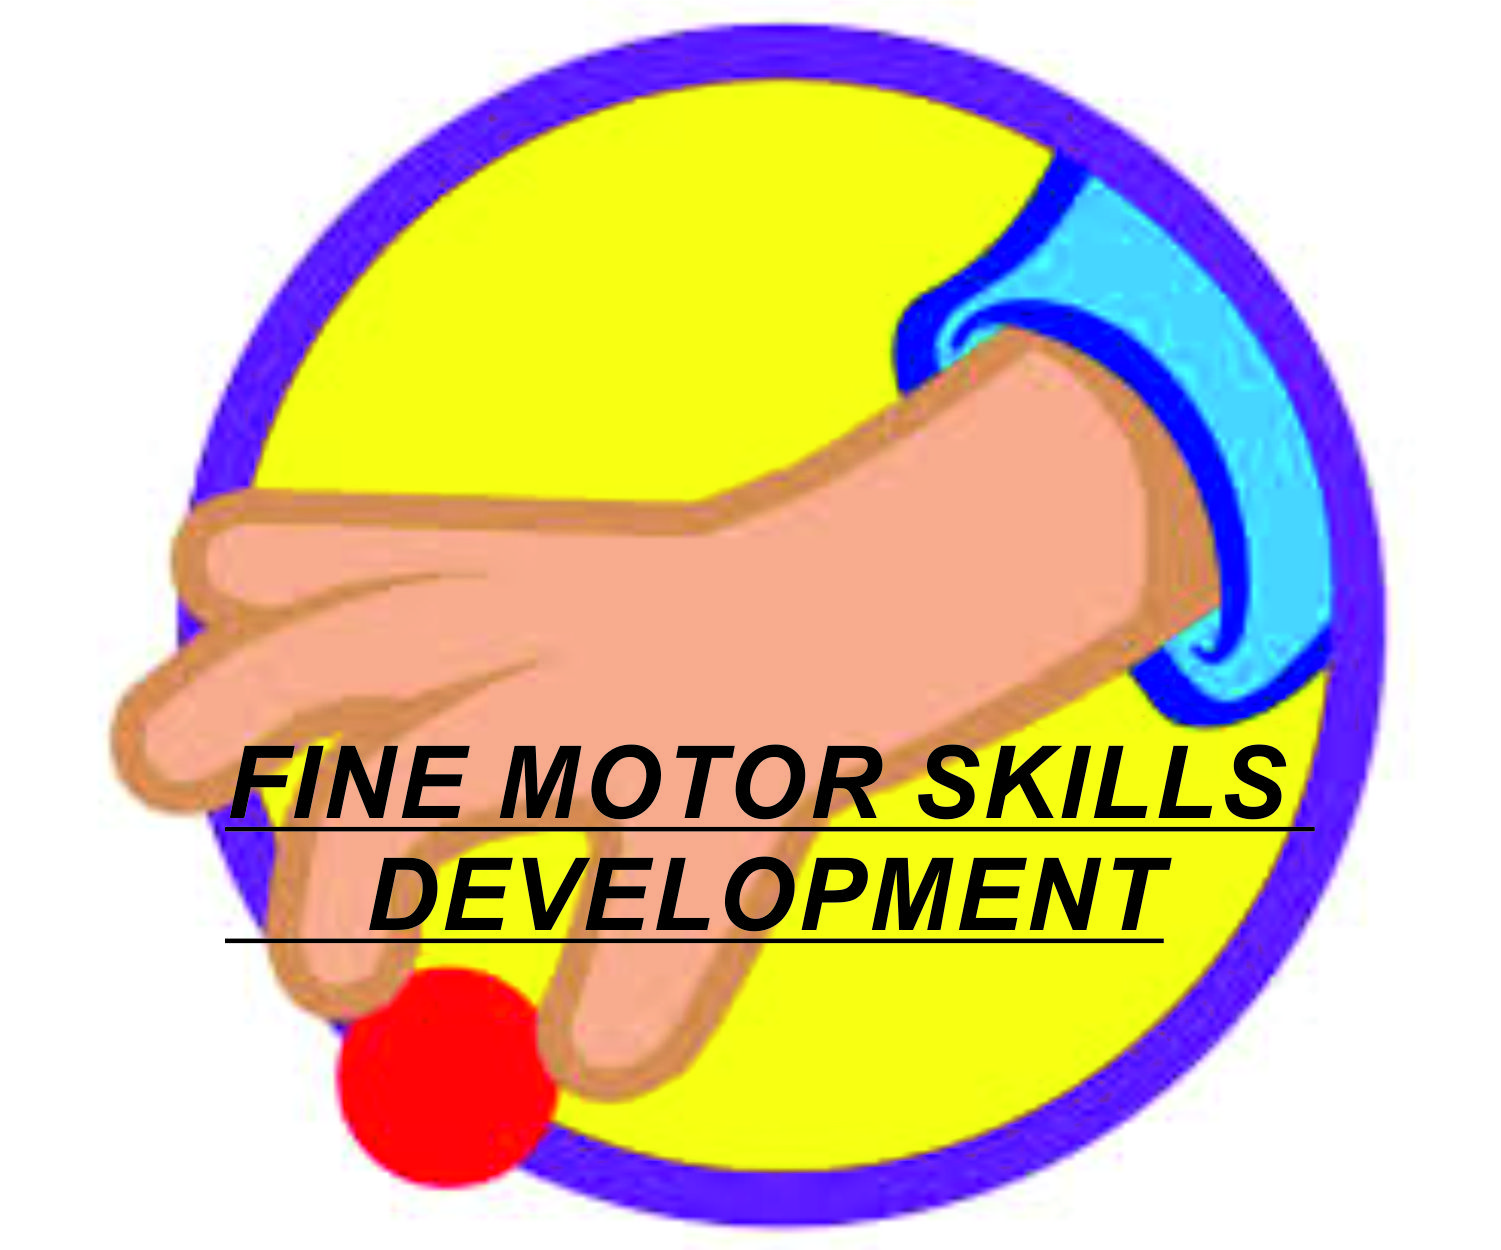 Activities for fine motor skills development.